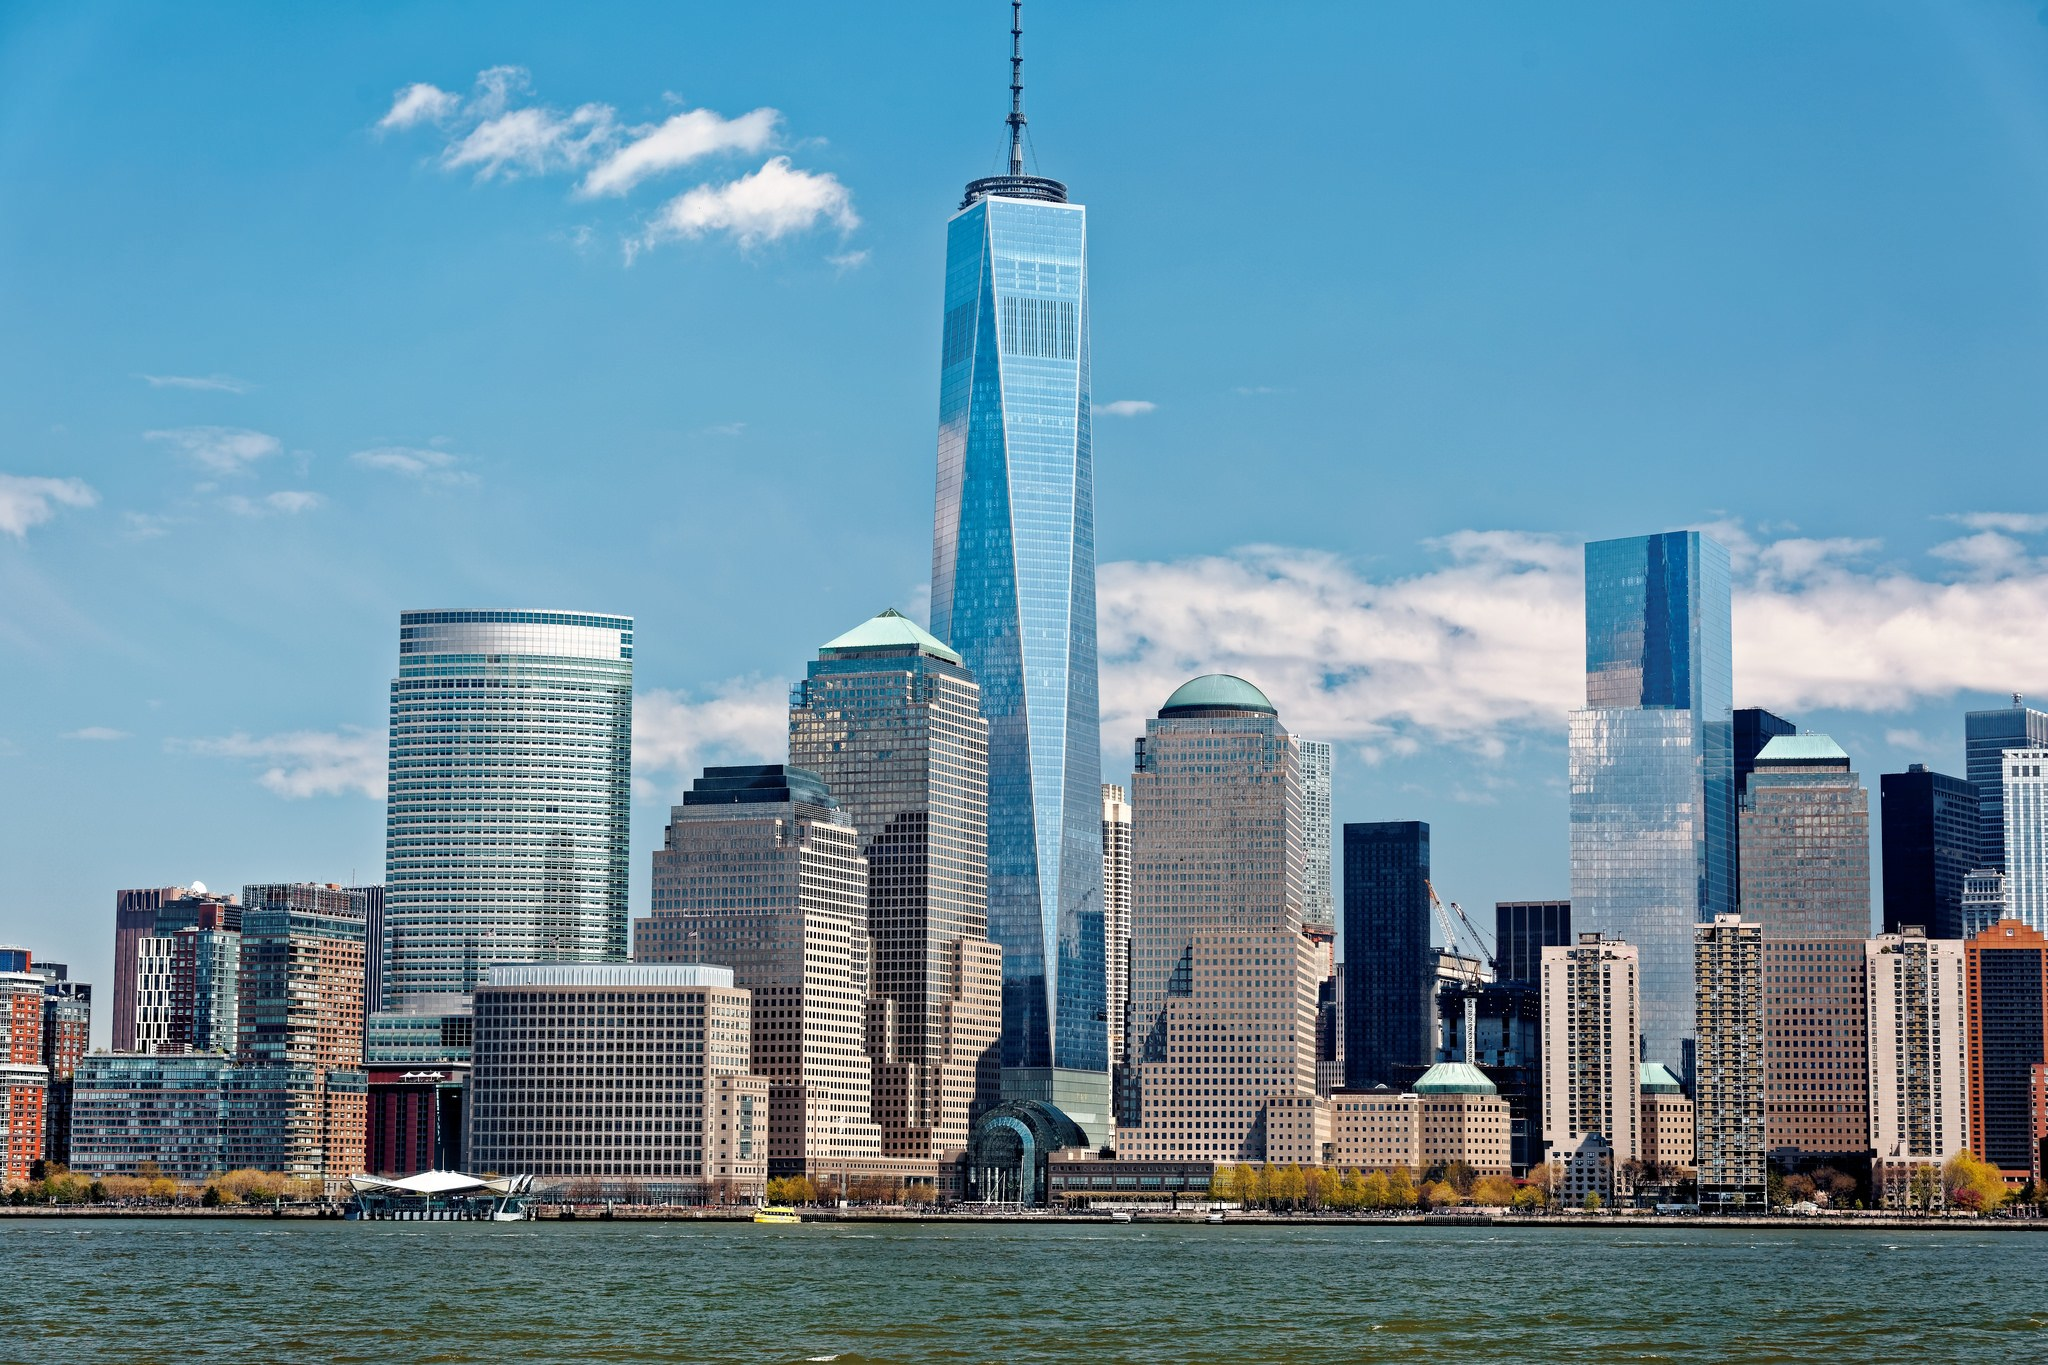 One World Trade Center - Tallest Building in the World - Beautiful Global